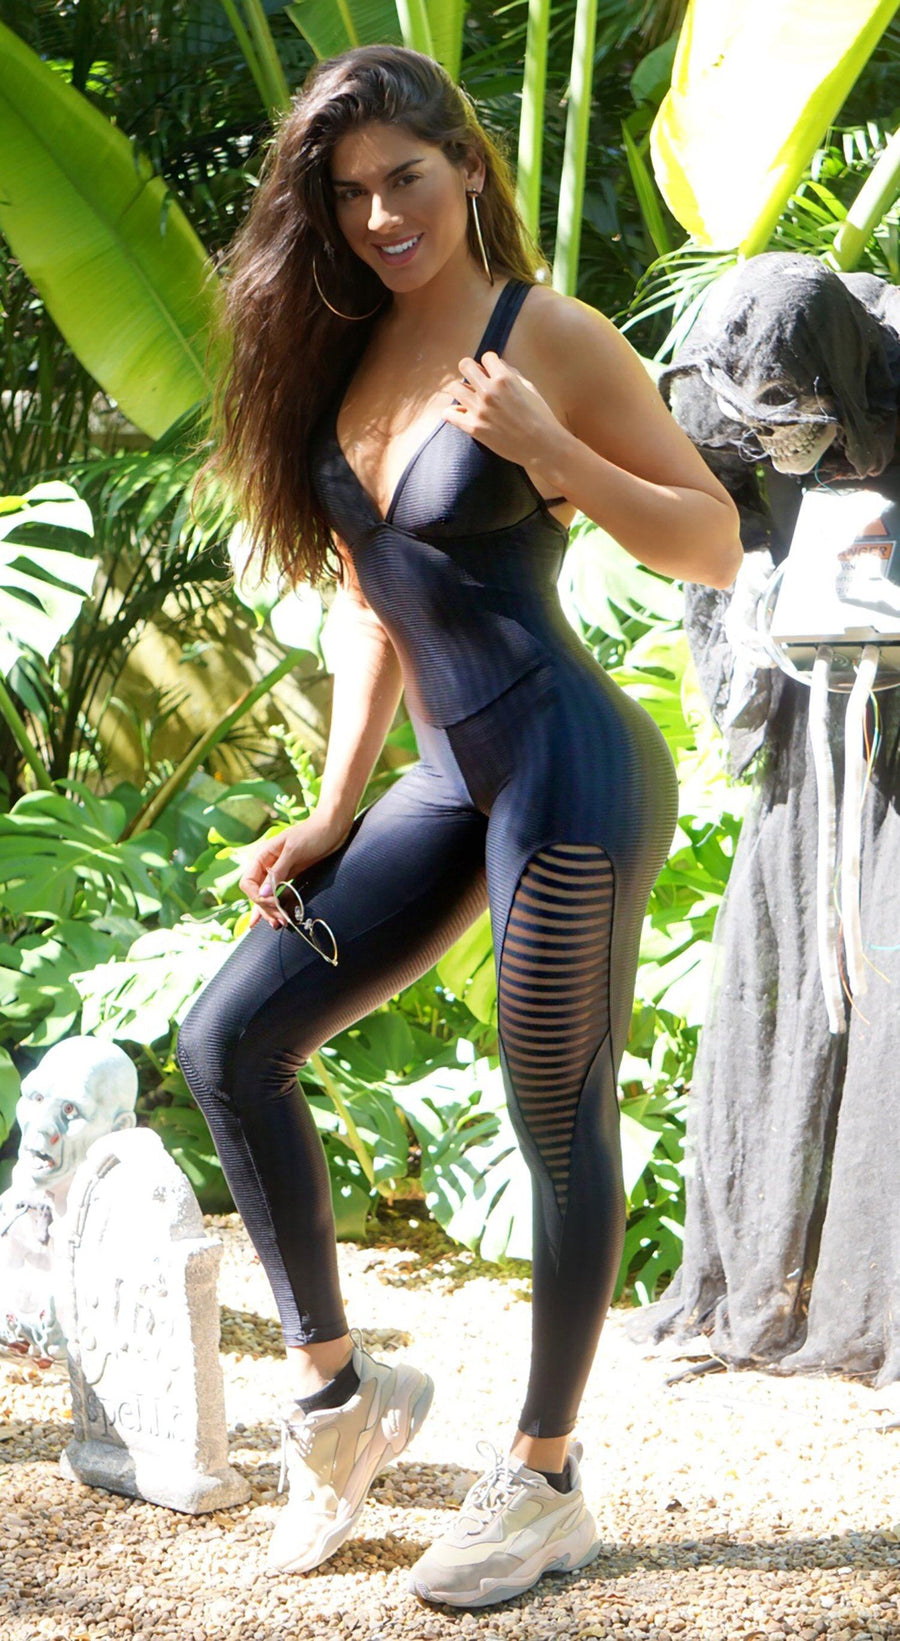 Brazilian Workout Jumpsuit - Lotus One piece Black